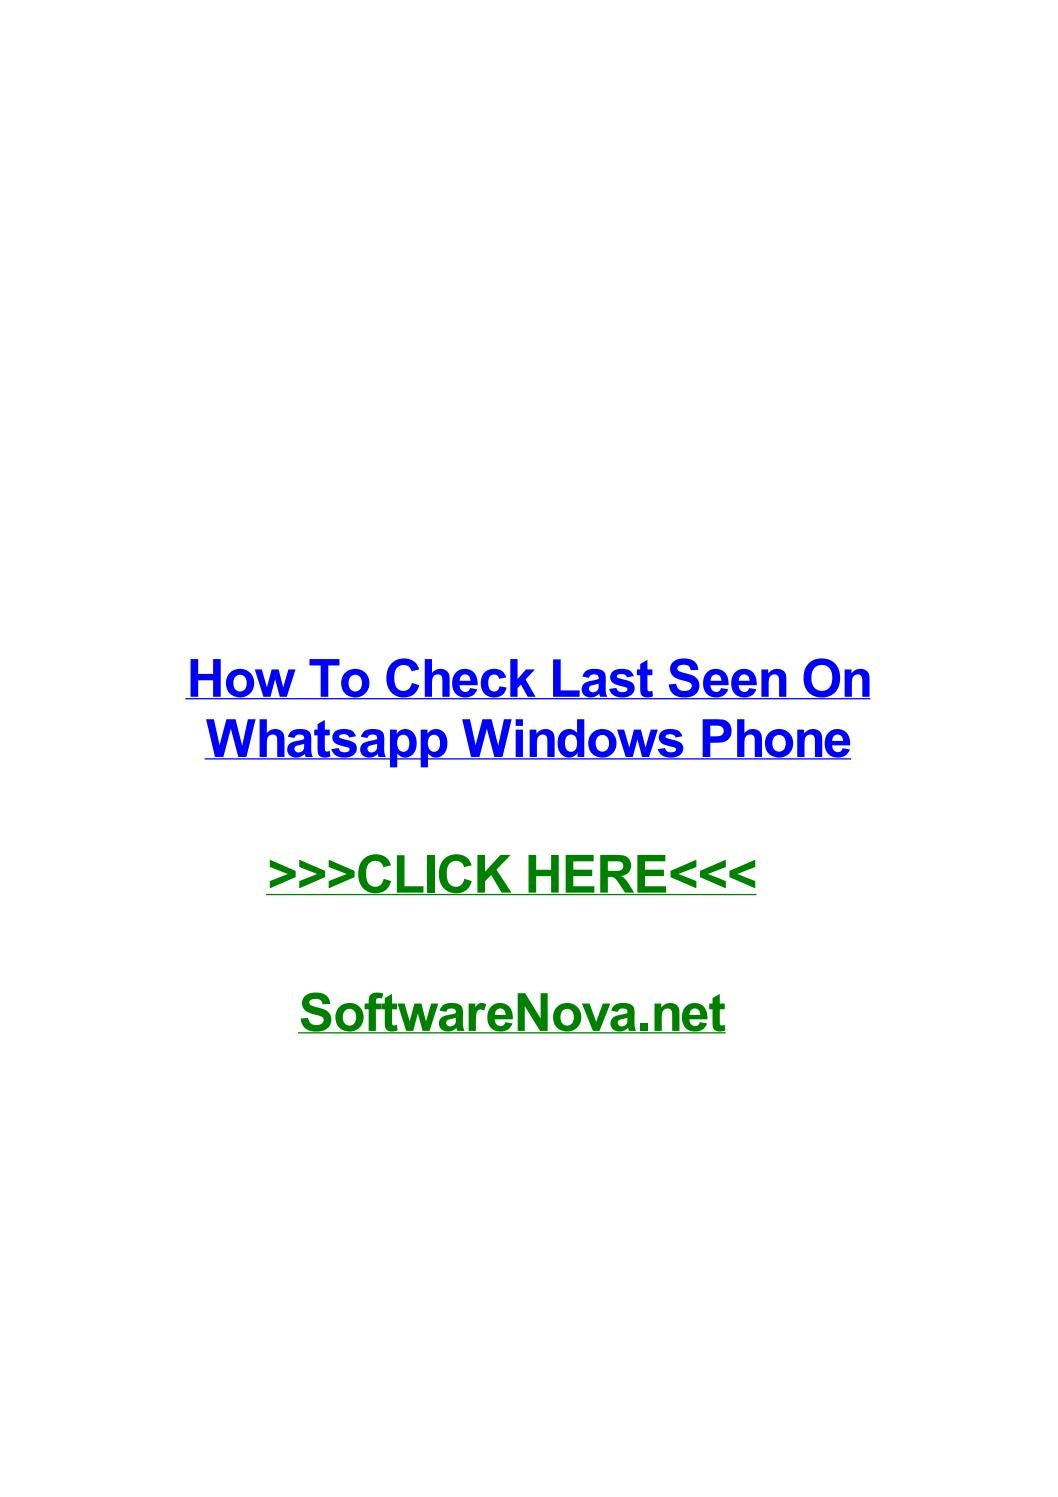 How To Check Last Seen On Whatsapp Windows Phone By Evaffvk